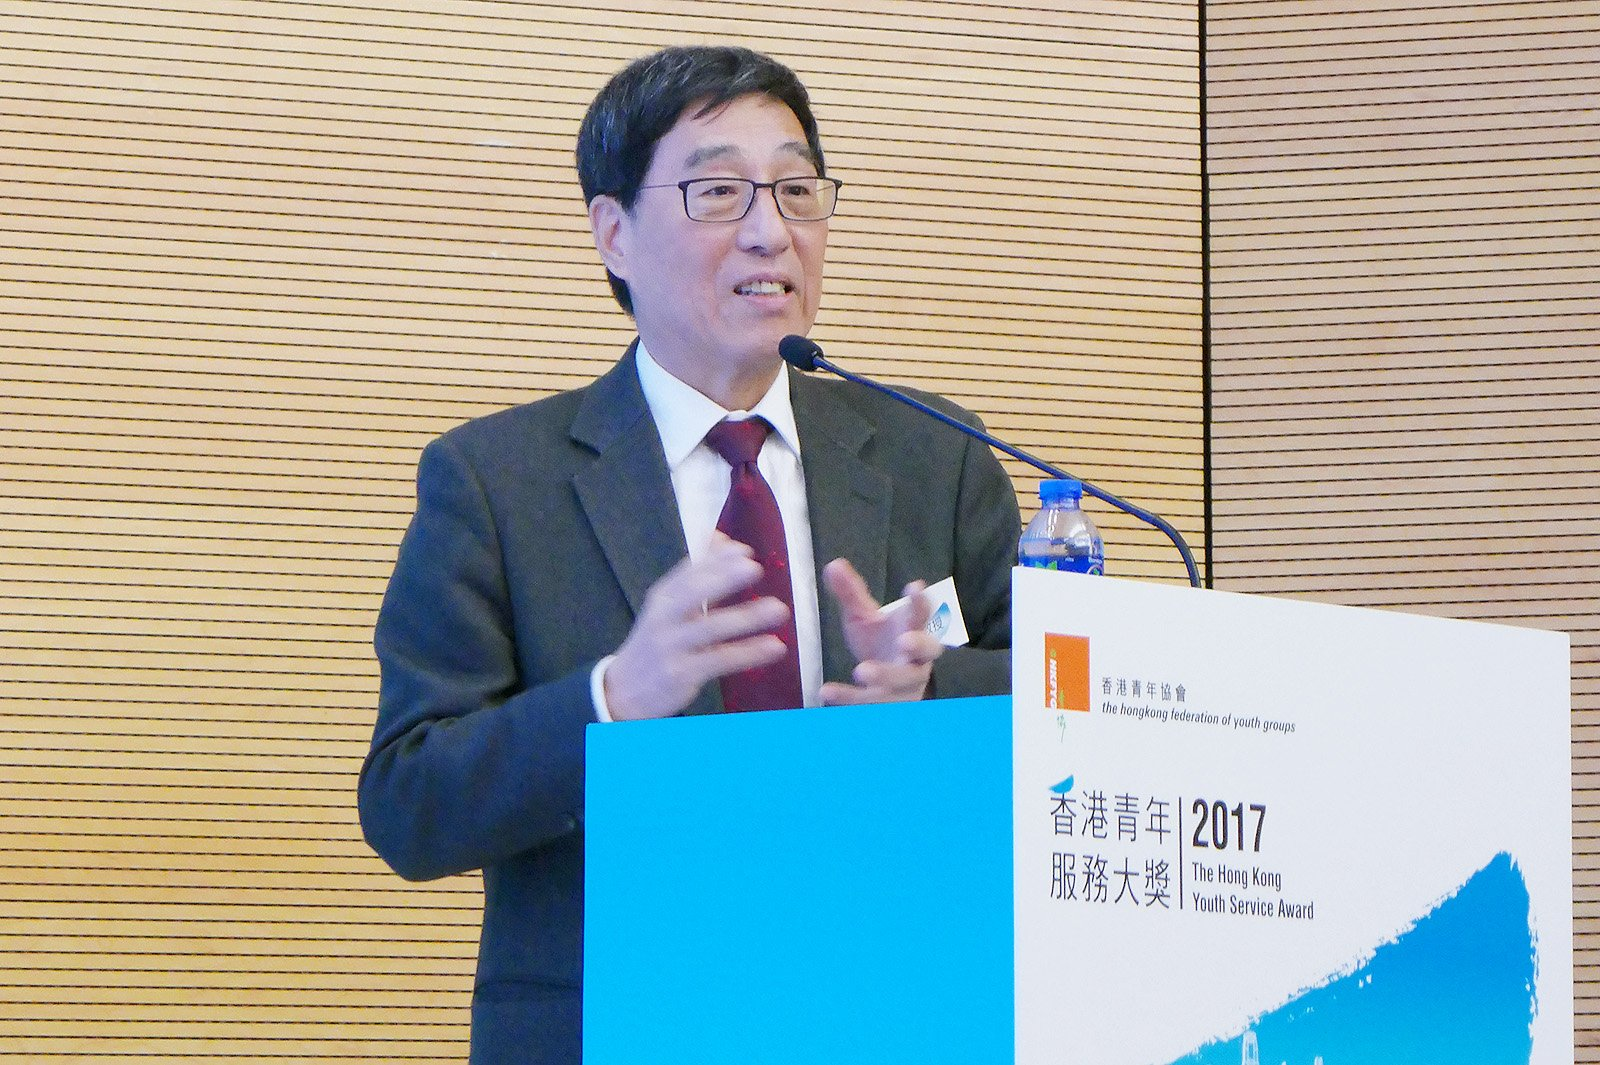 Professor Kuo delivers the keynote speech at The Hong Kong Youth Service Award 2017 presentation ceremony.